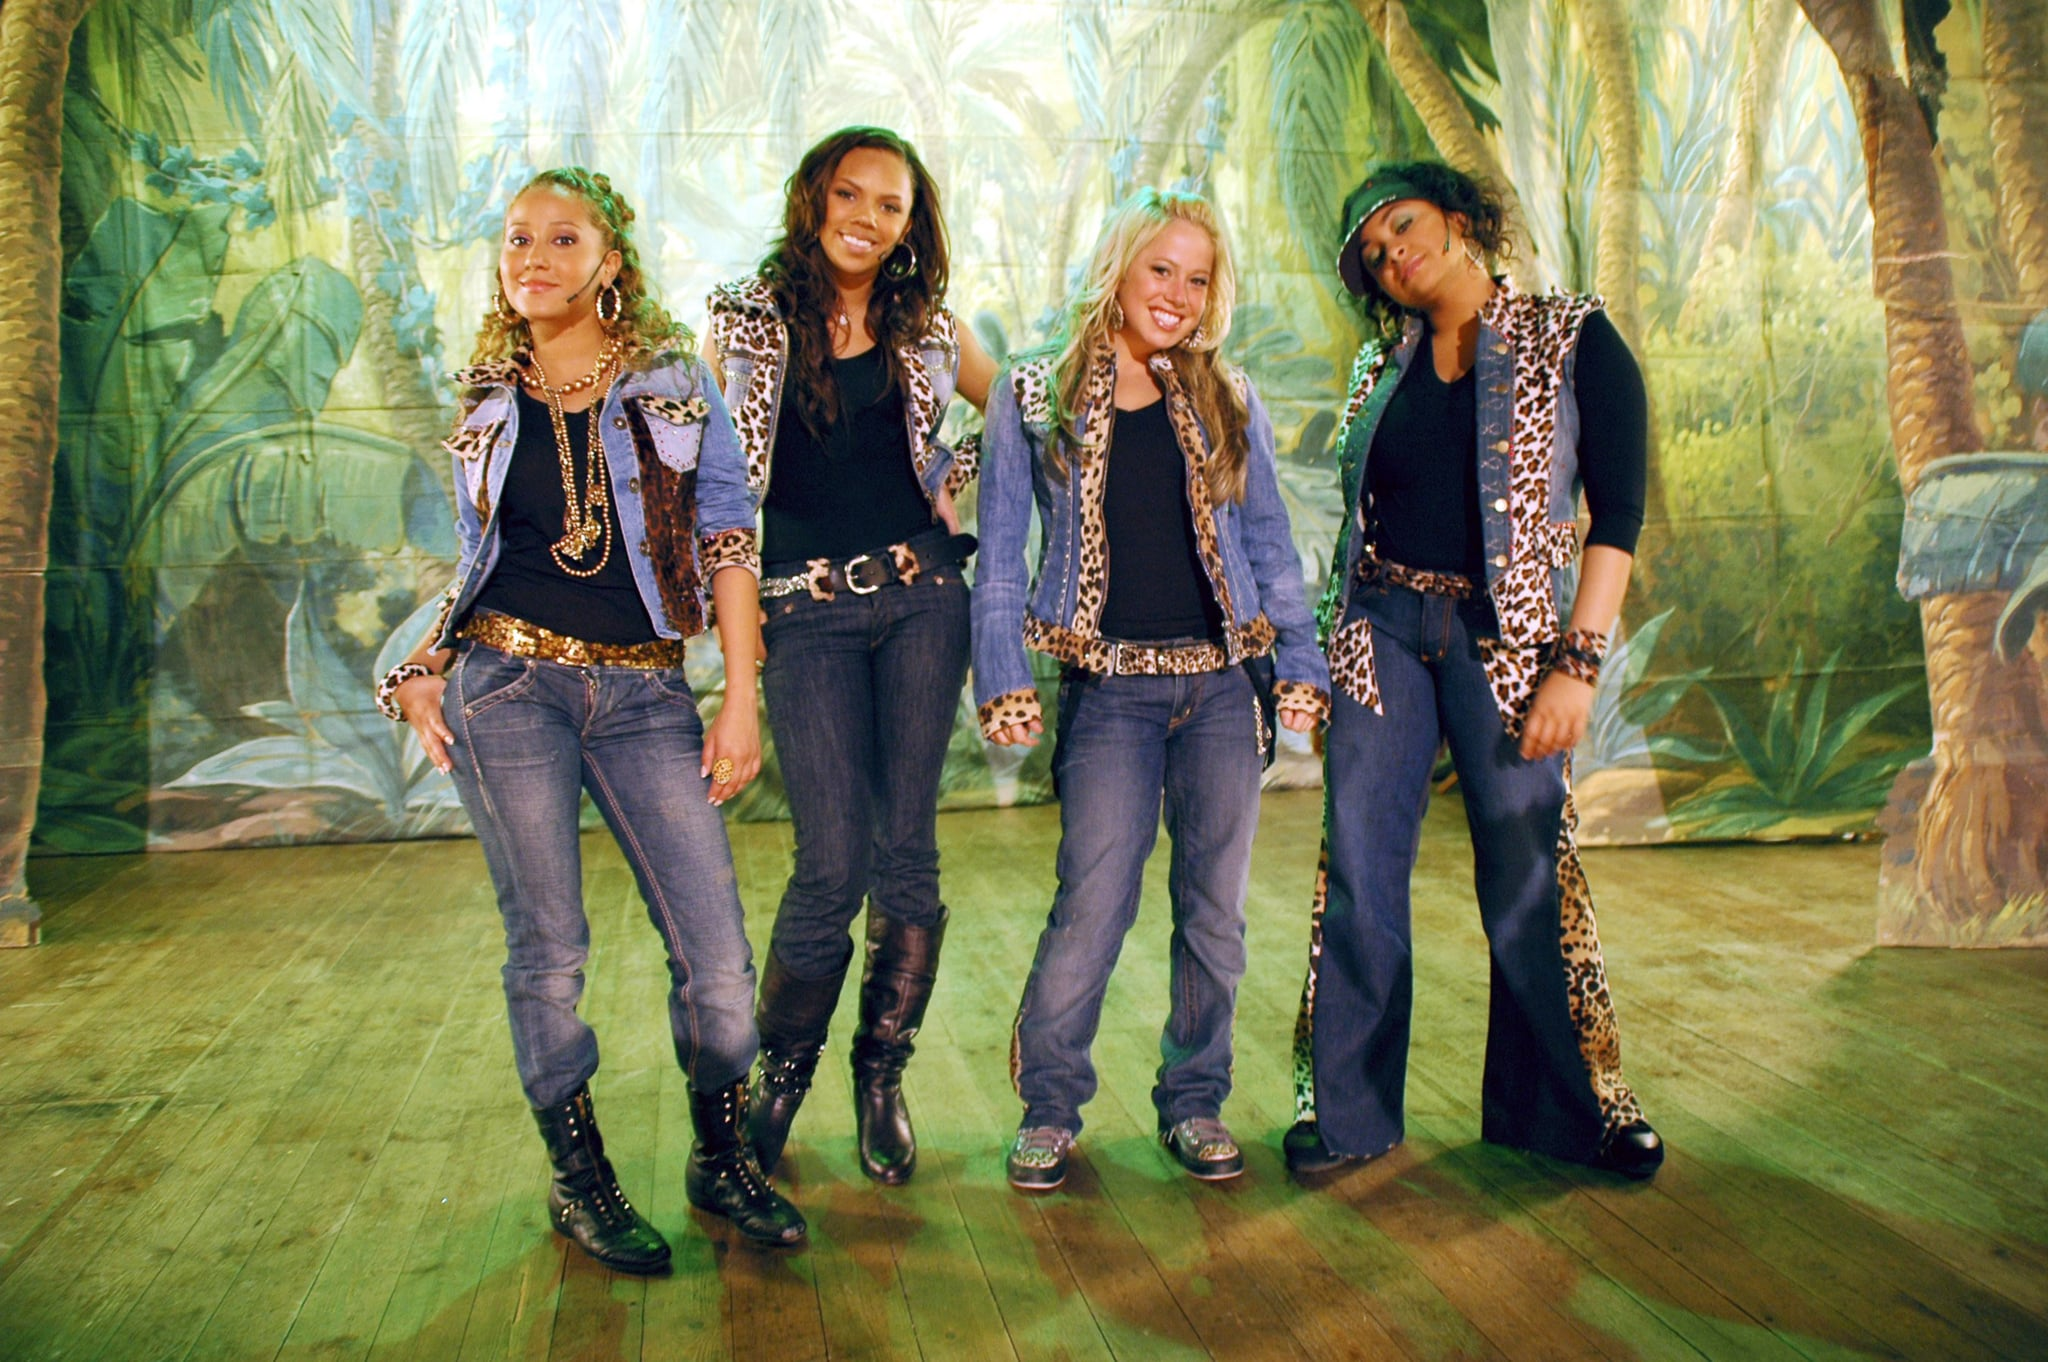 CHEETAH GIRLS 2: WHEN IN SPAIN, Adrienne Bailon, Kiely Williams, Sabrina Bryan, Raven-Symone,  2006,  Disney Channel / Courtesy: Everett Collection